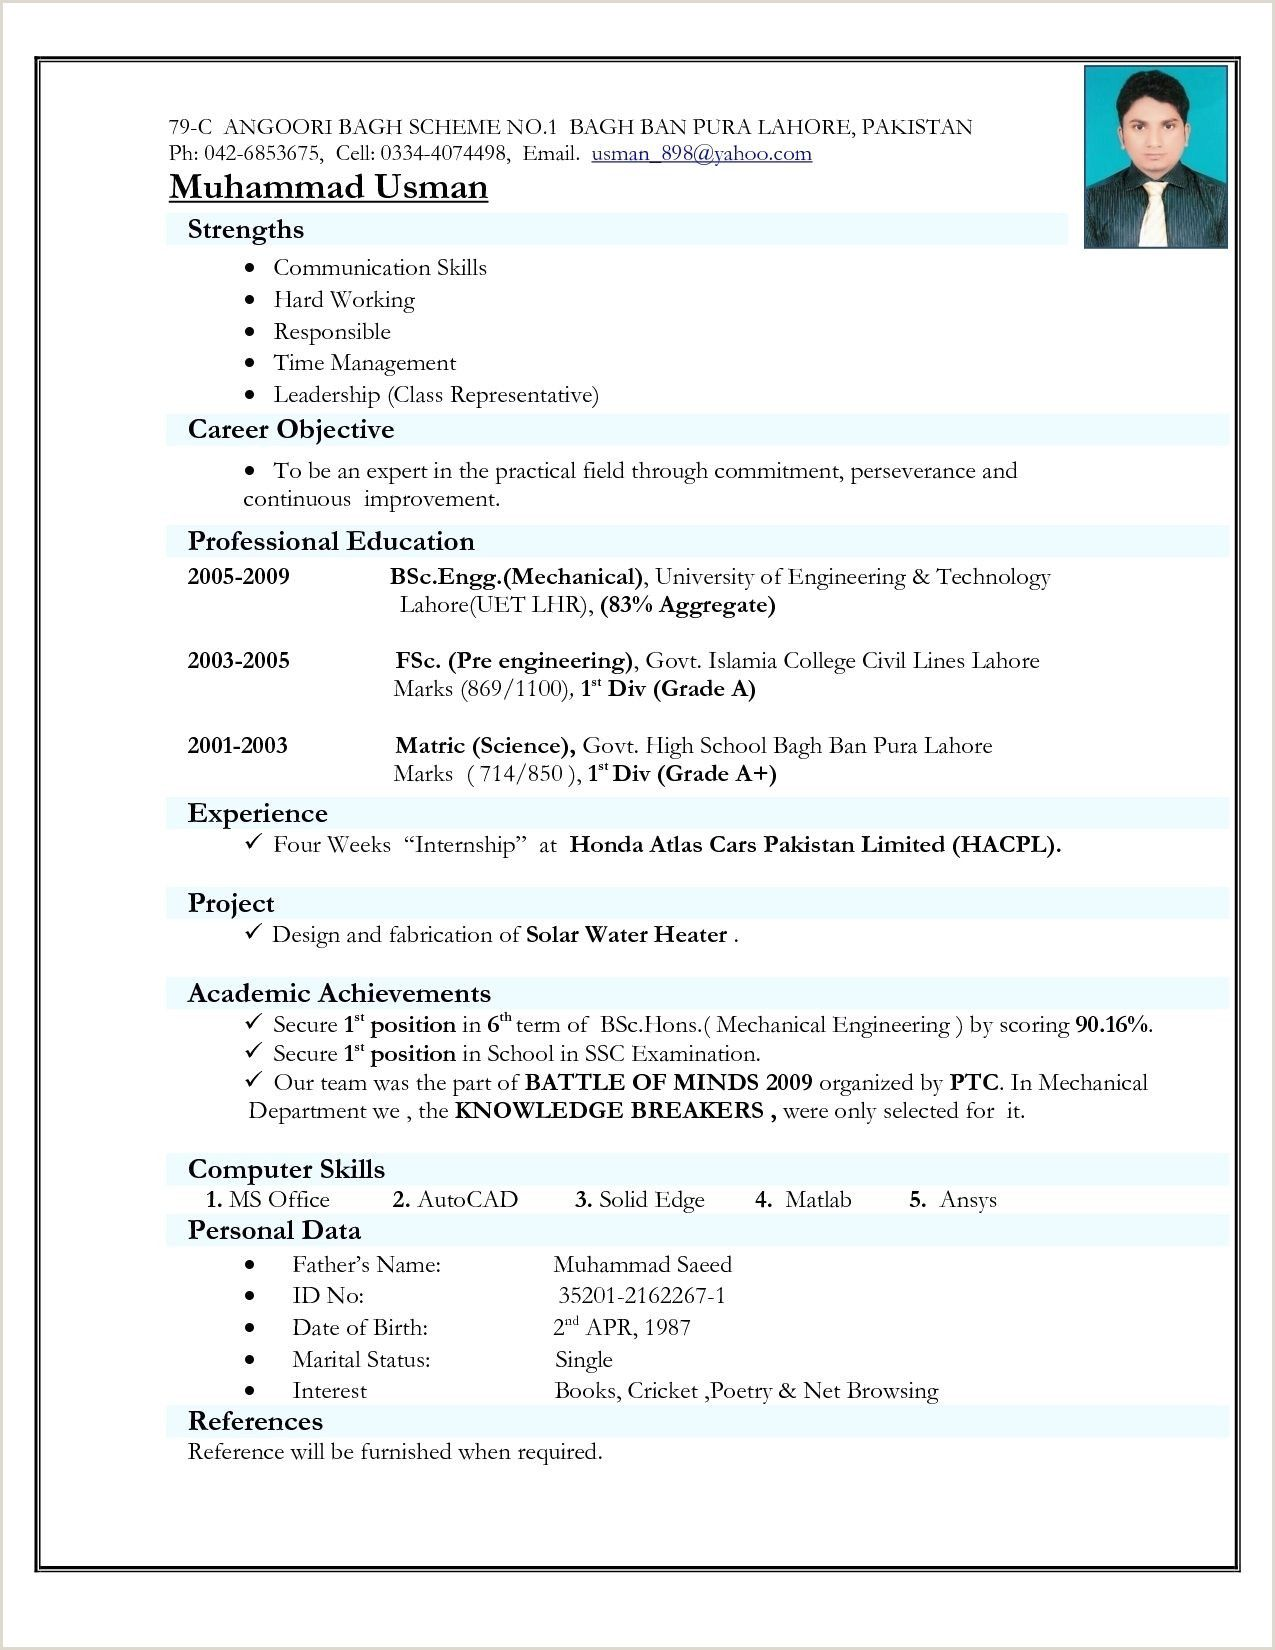 Fresher Resume Format Computer Science Engineers Engineering Resume Templates Basic Resume Engineering Resume